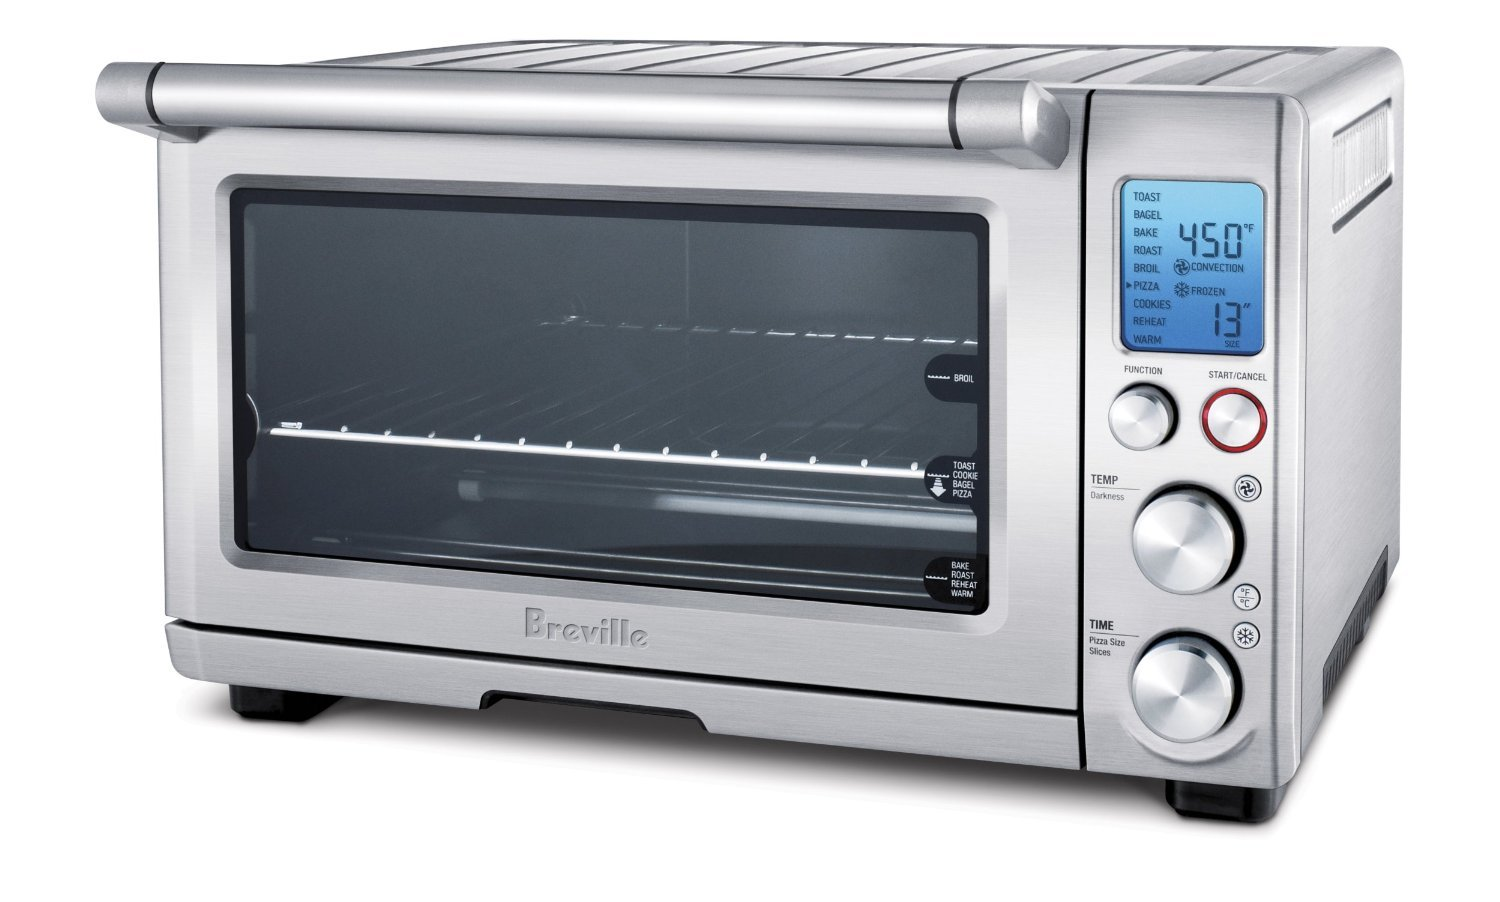 Best Toaster Oven 2017 Top Rated Toaster Ovens And Reviews